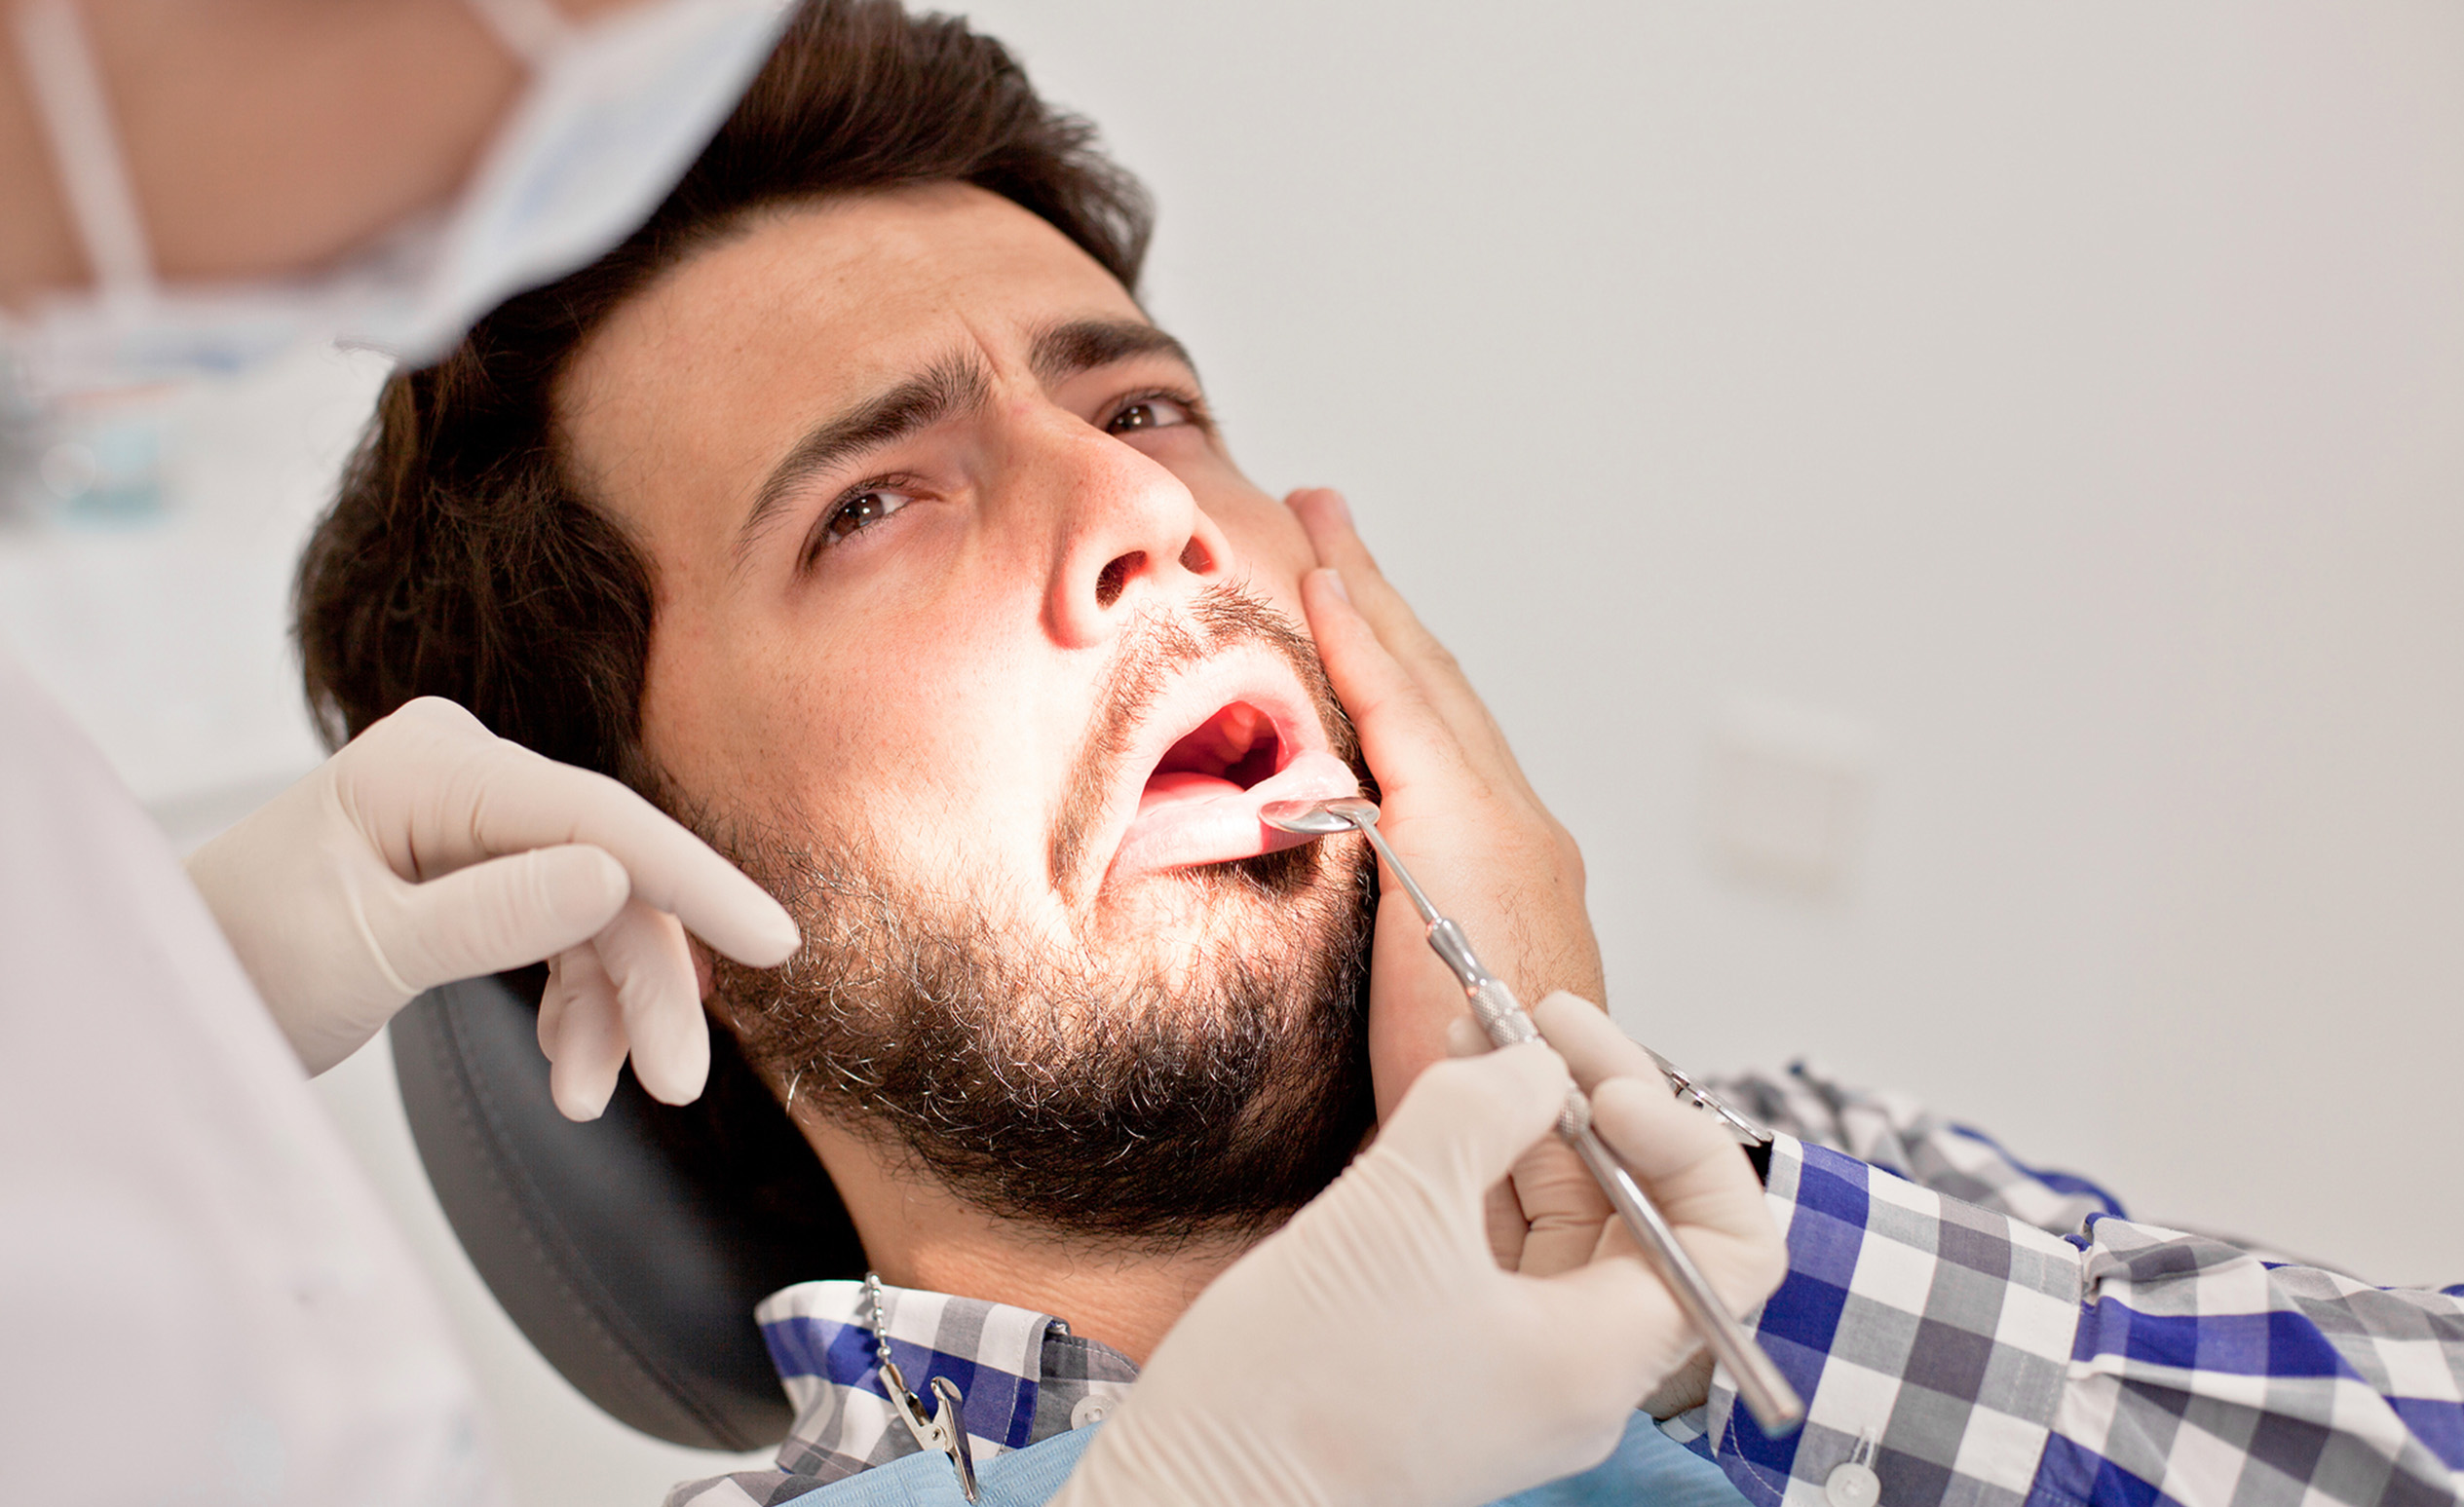 A dentist examines the teeth of this man because he got an insensible tooth.